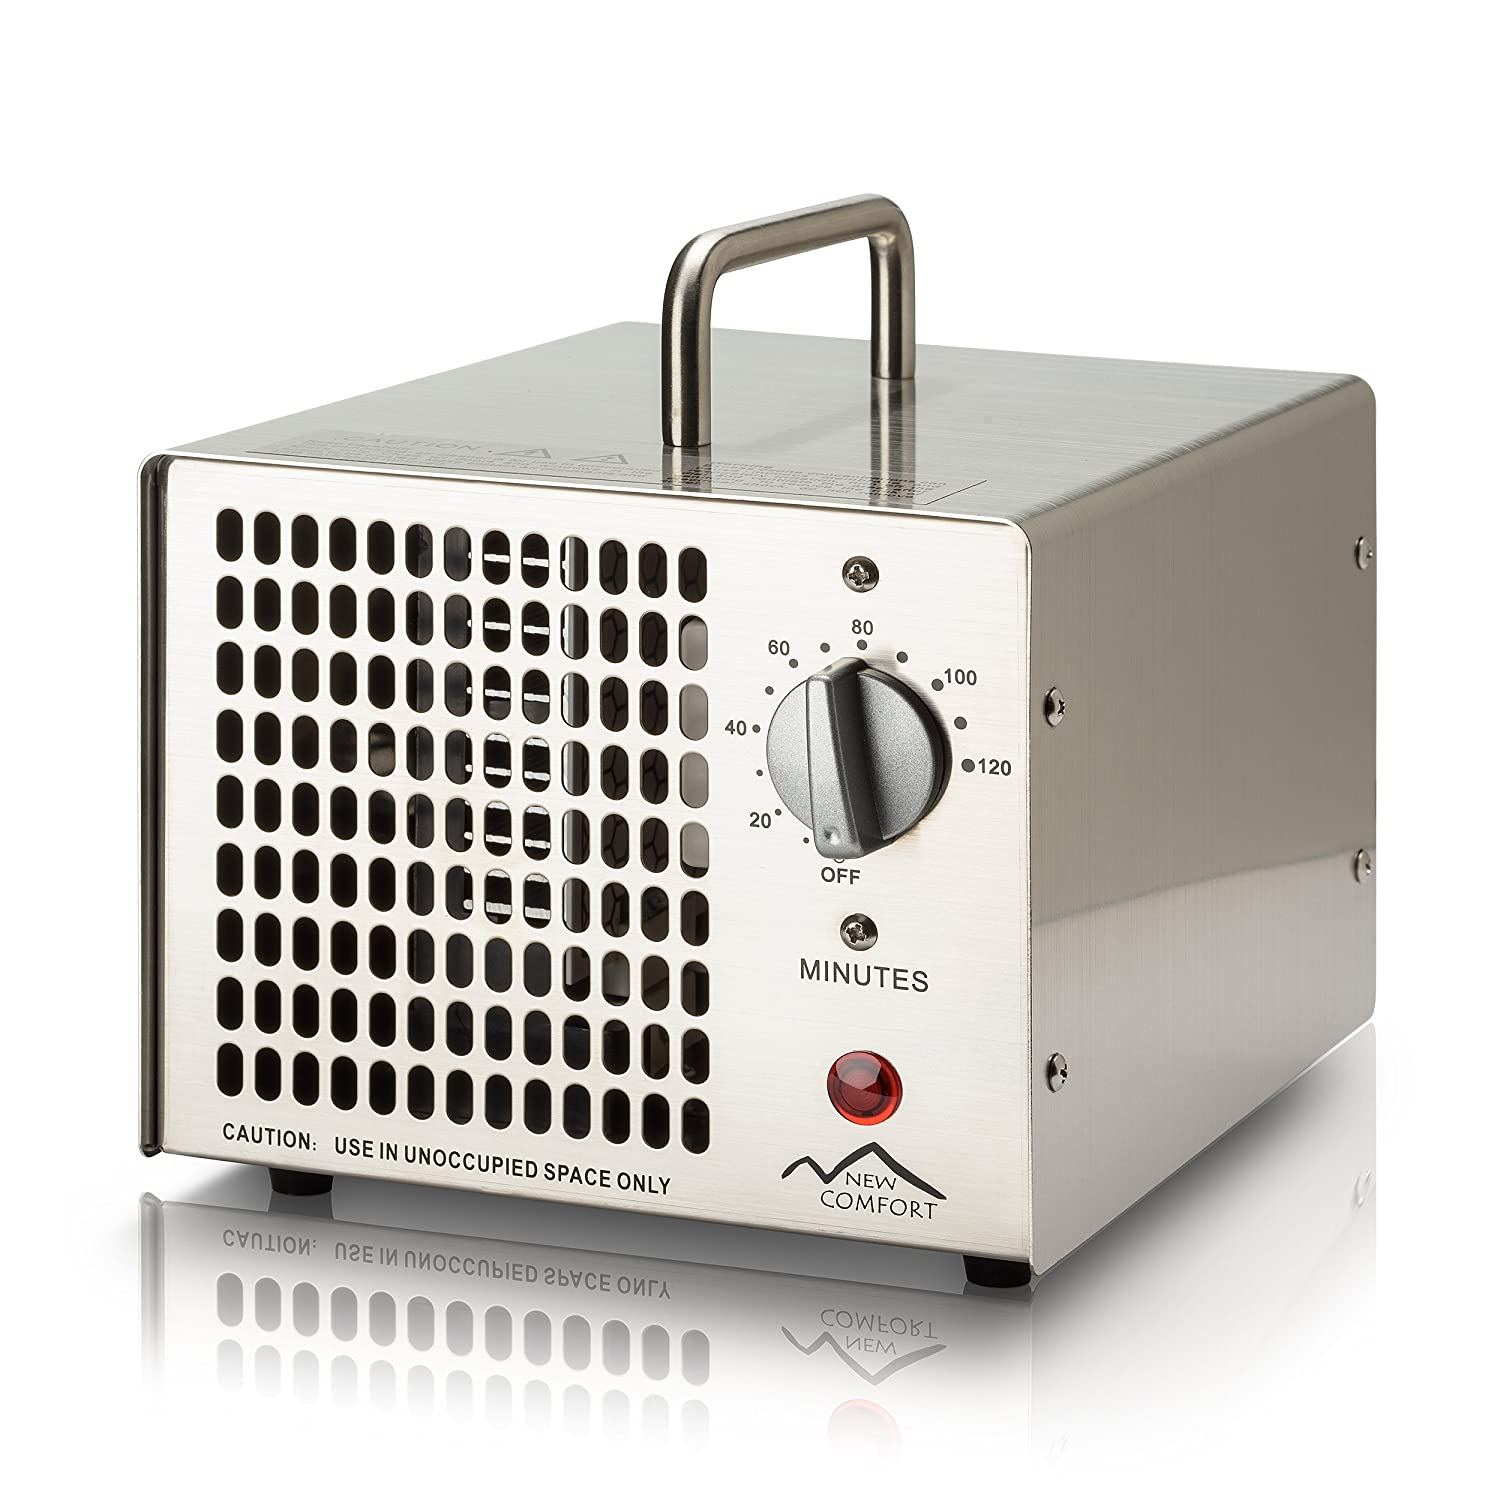 New Comfort Stainless Steel HE-500 Commercial Ozone Generator Air Purifier